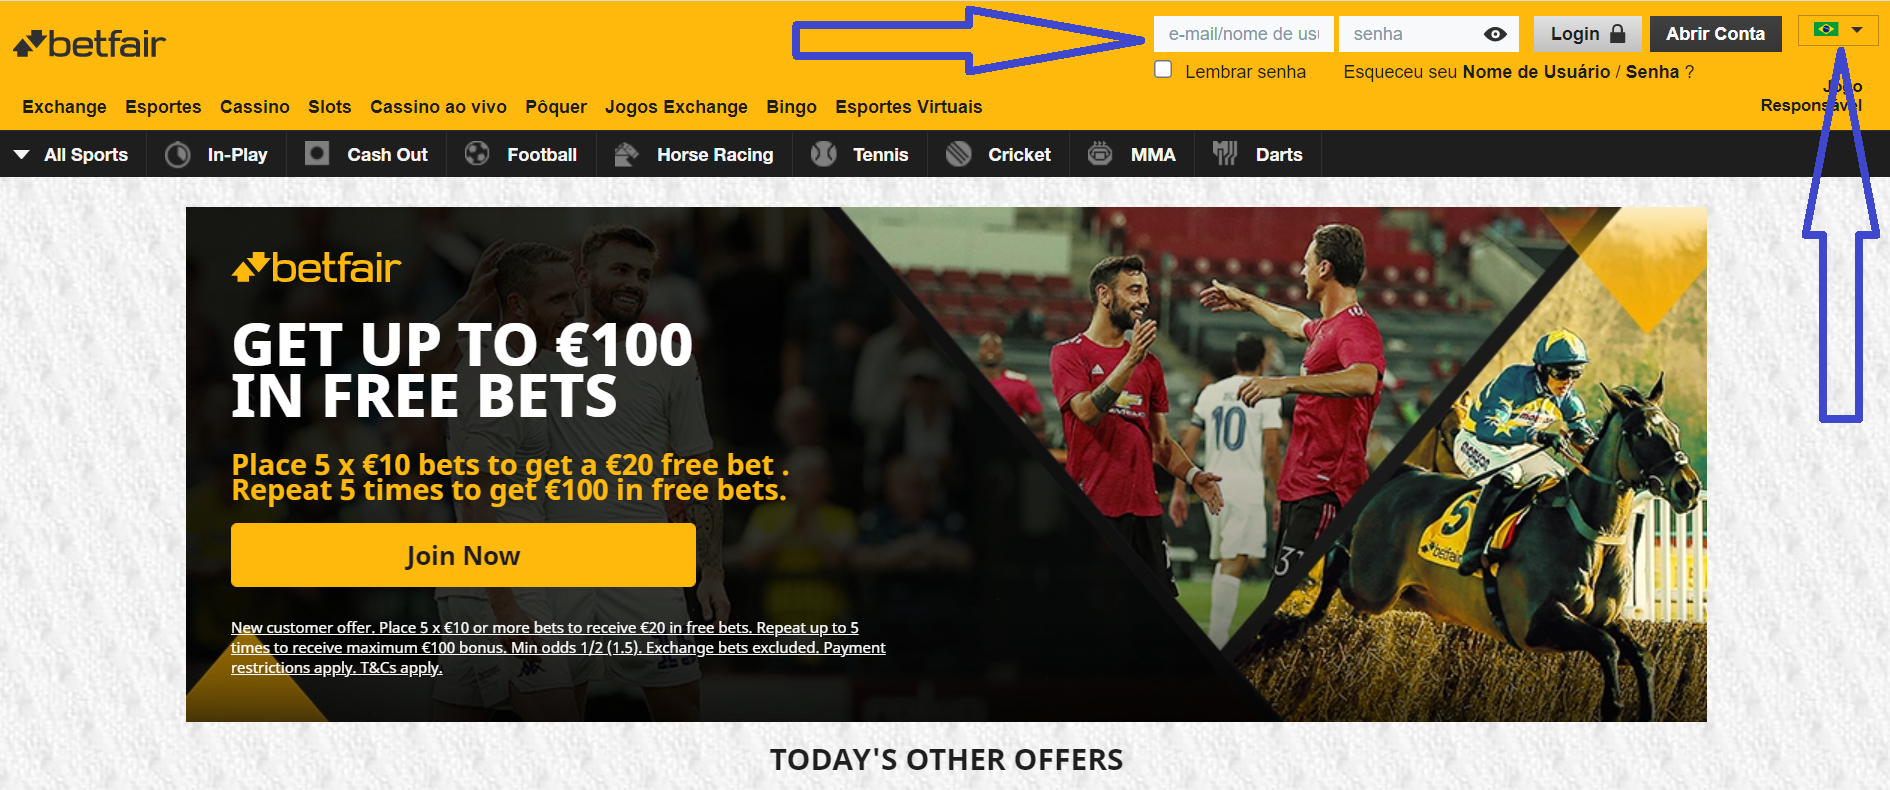 Betfair Intercâmbio